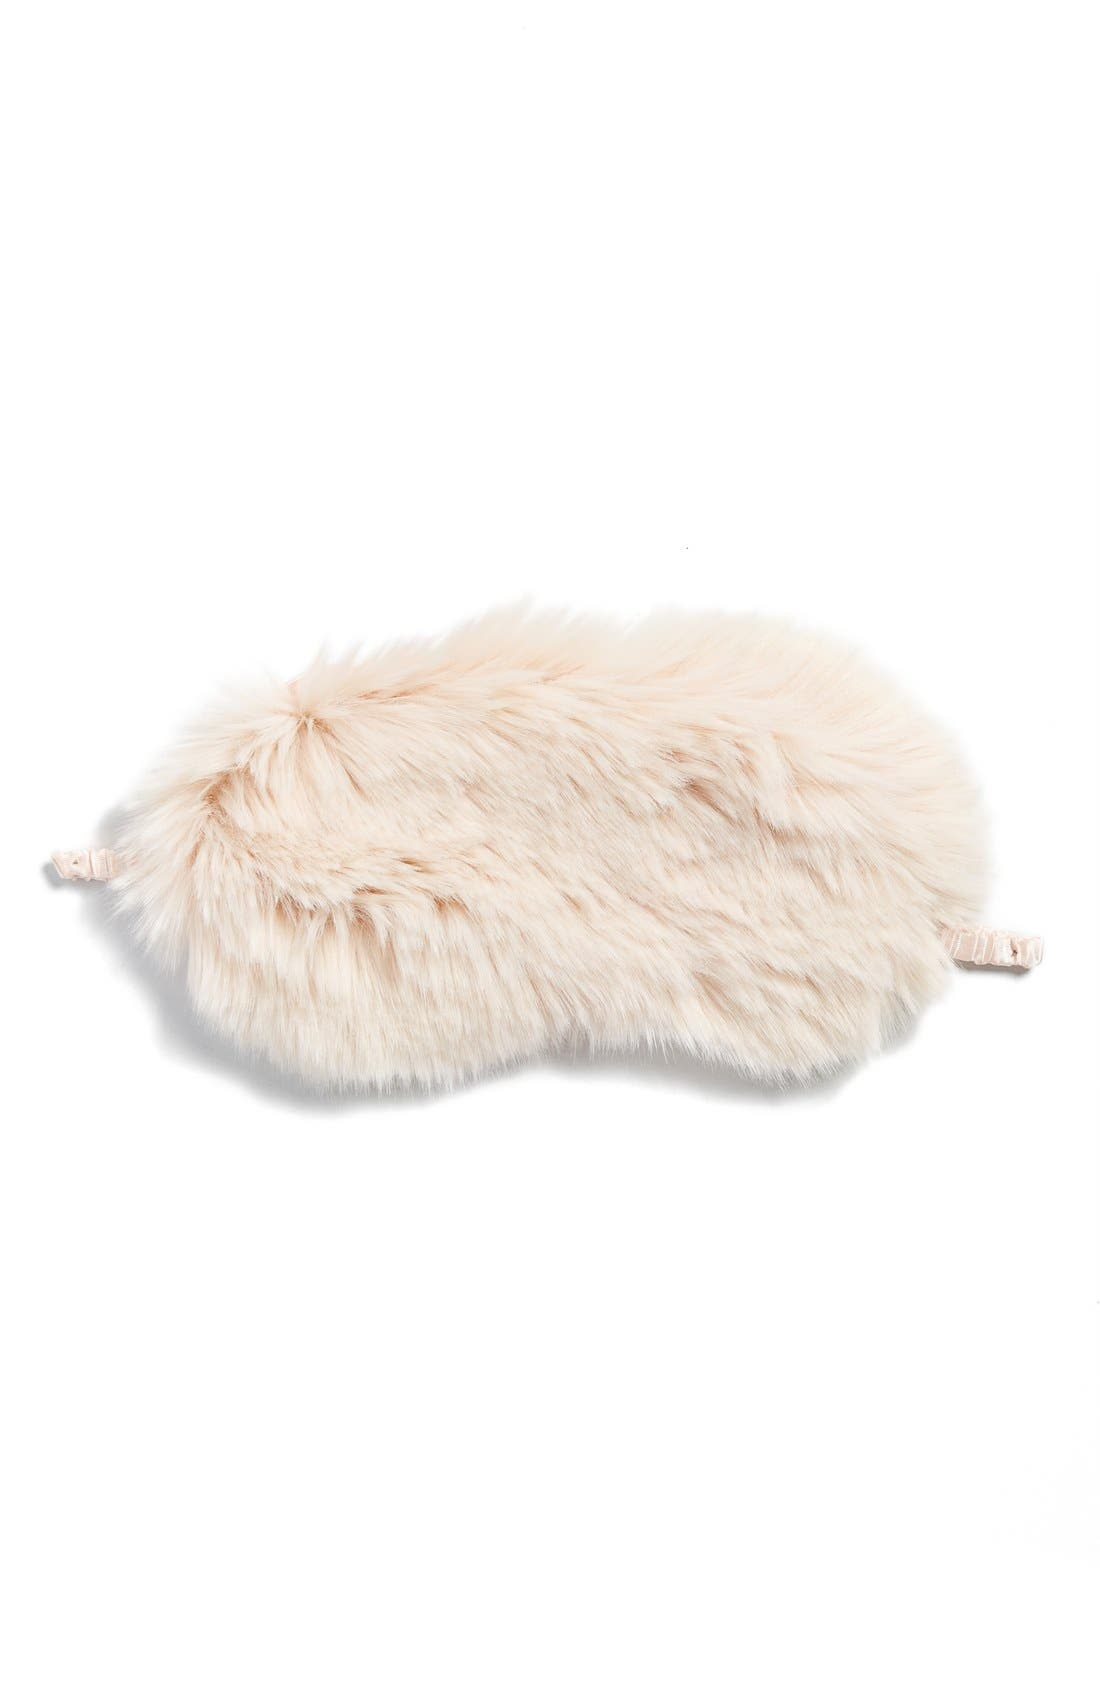 Nordstrom Faux Fur Eye Mask,                             Main thumbnail 3, color,